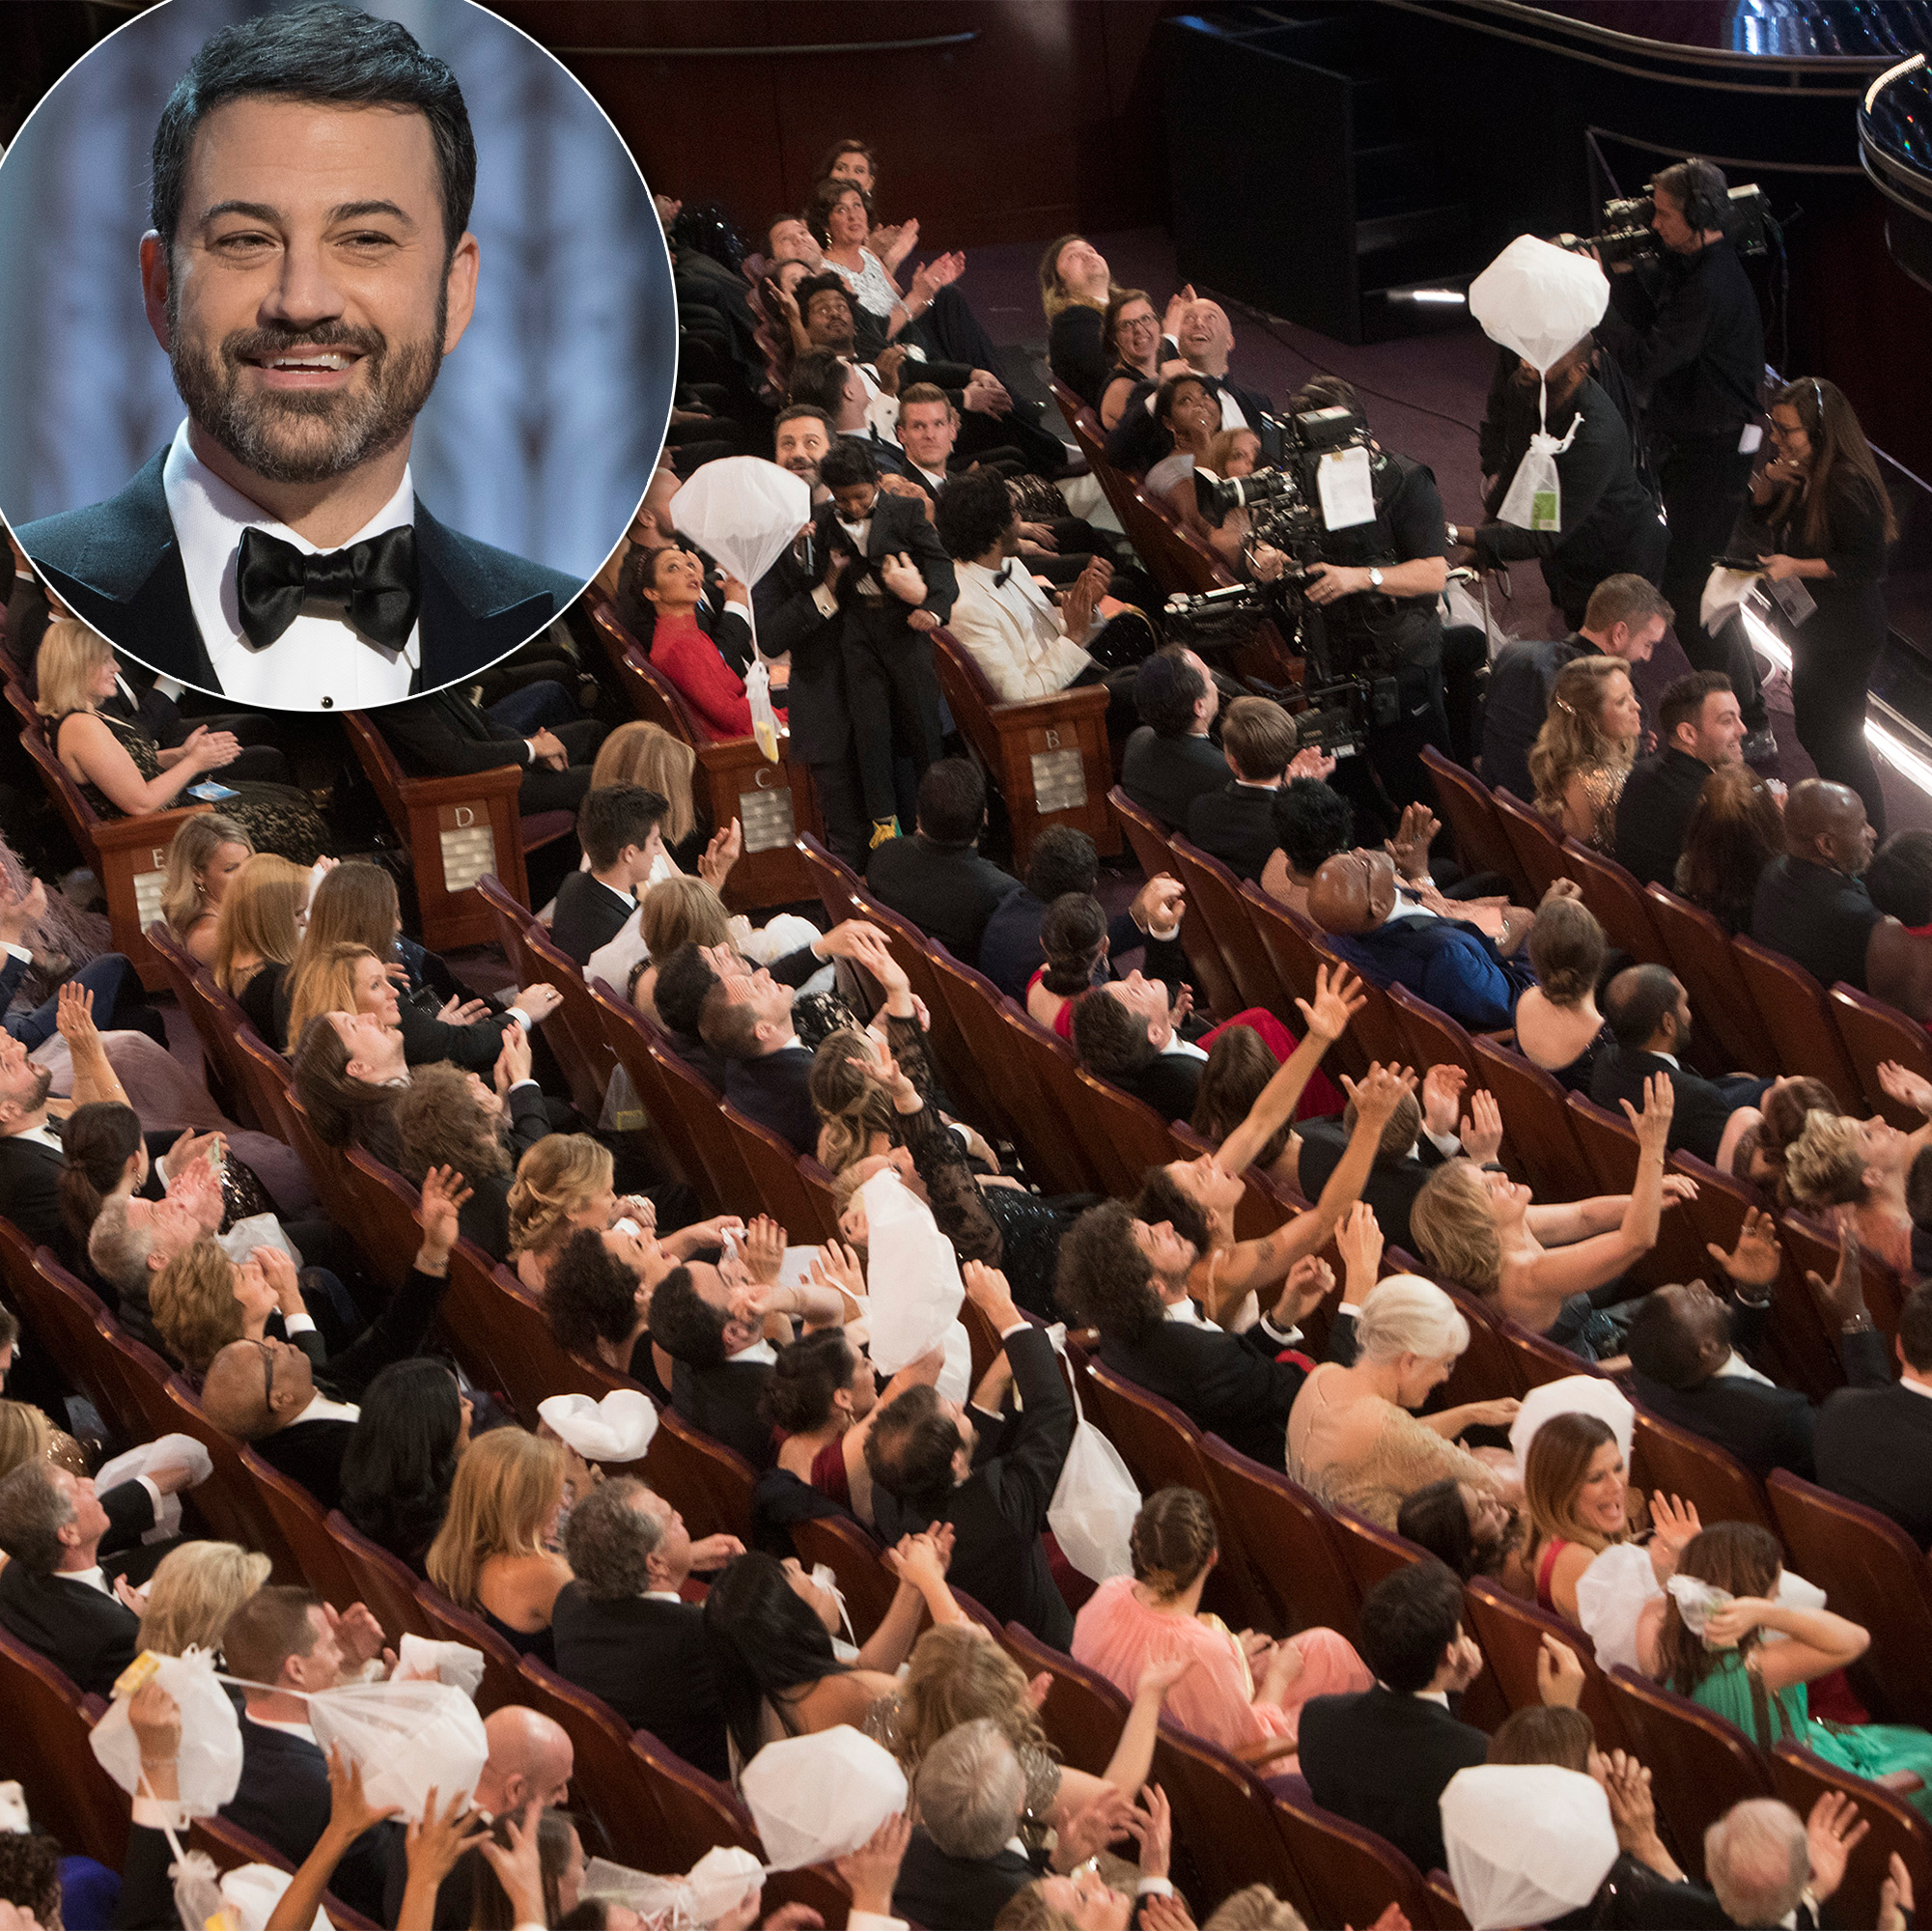 Let Them Eat! Melissa McCarthy, Gemma Chan and More Stars Who Brought Food to Awards Shows - The Jimmy Kimmel Live! host followed in DeGeneres' footsteps multiple times.